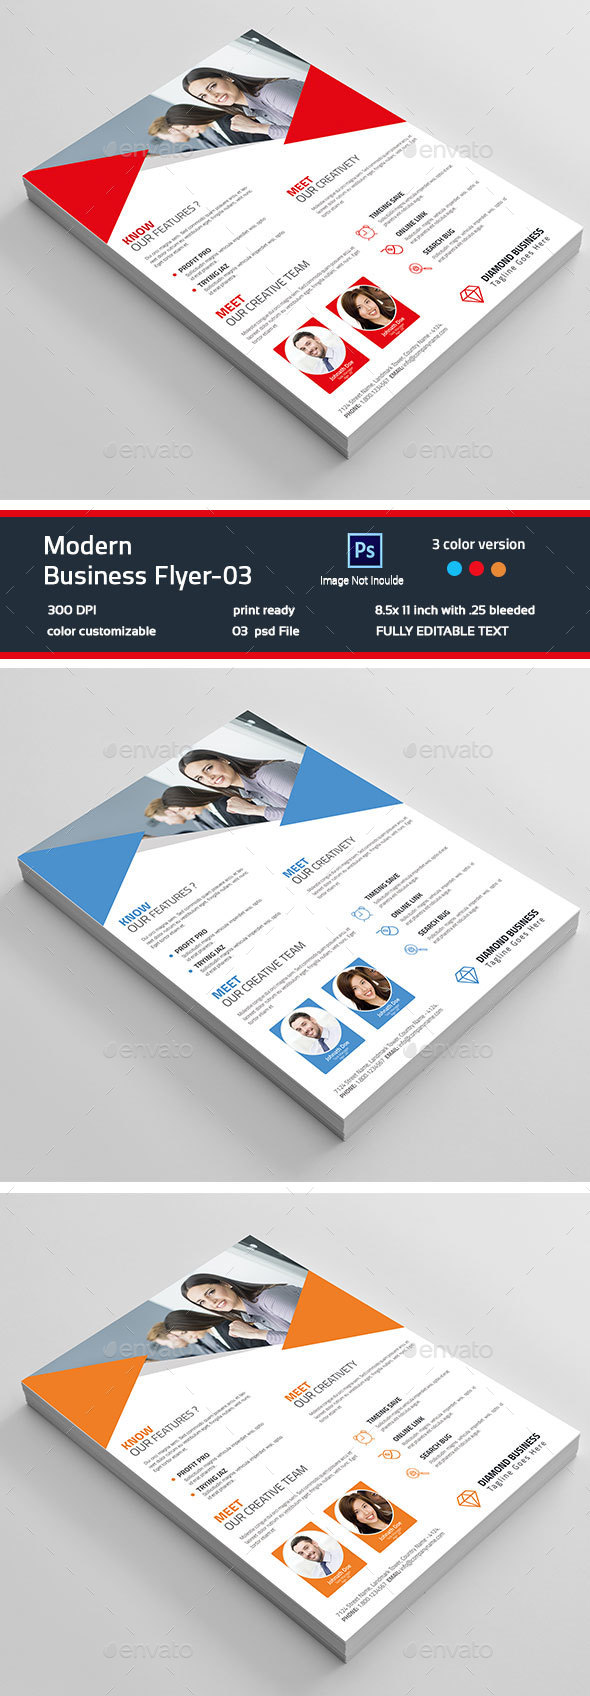 Modern Business Flyer-03 - Corporate Flyers